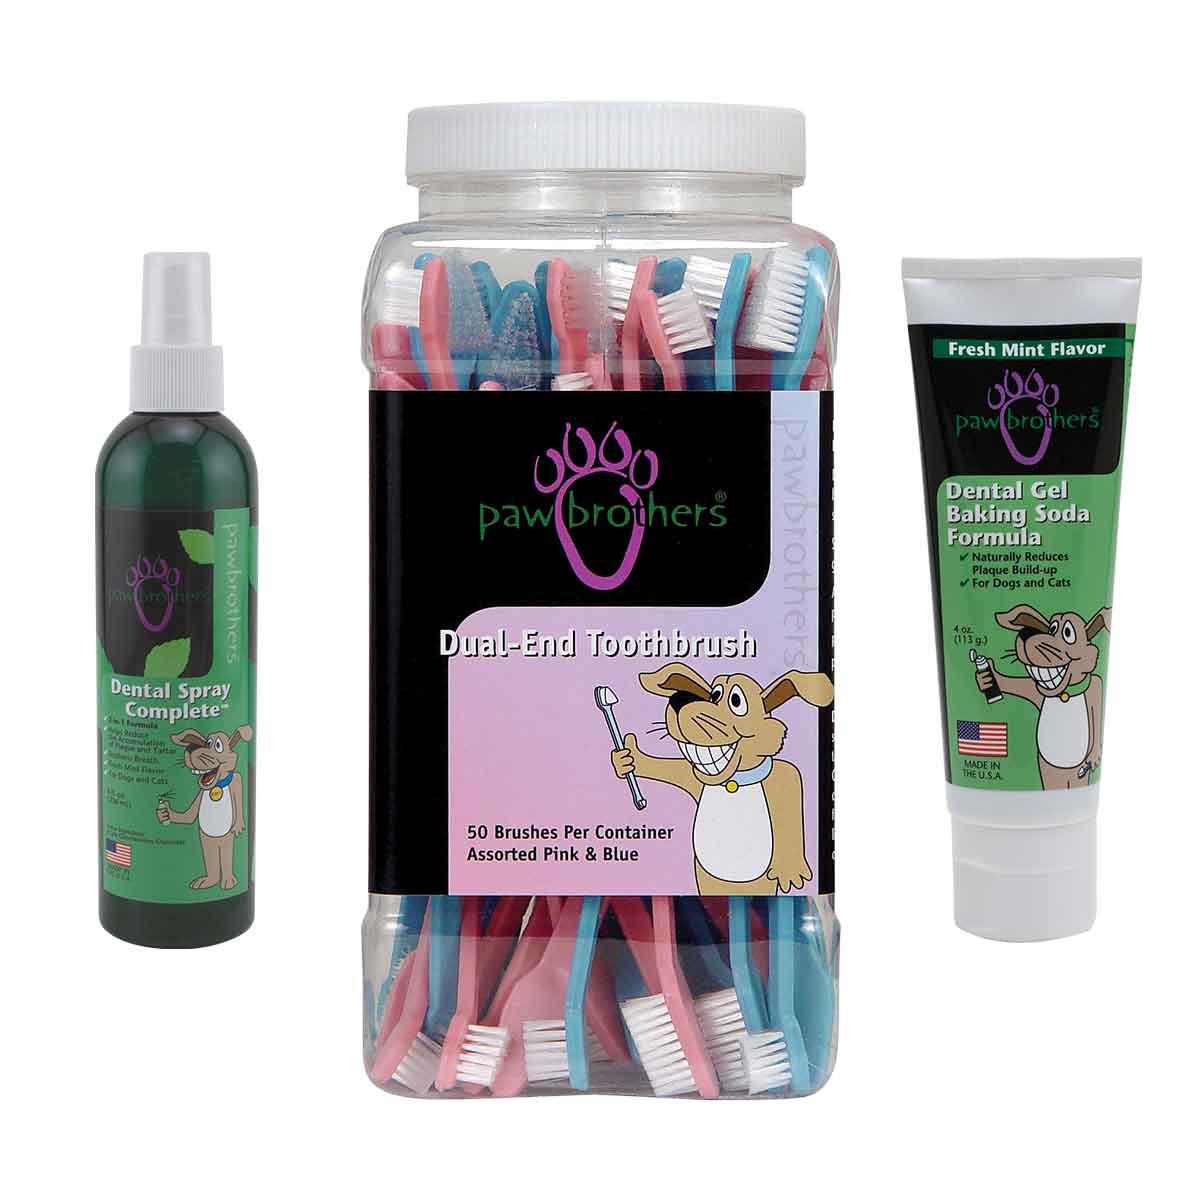 Paw Brothers Dental Spray, Dual-End Toothbrushes, and Dental Gel for Dogs